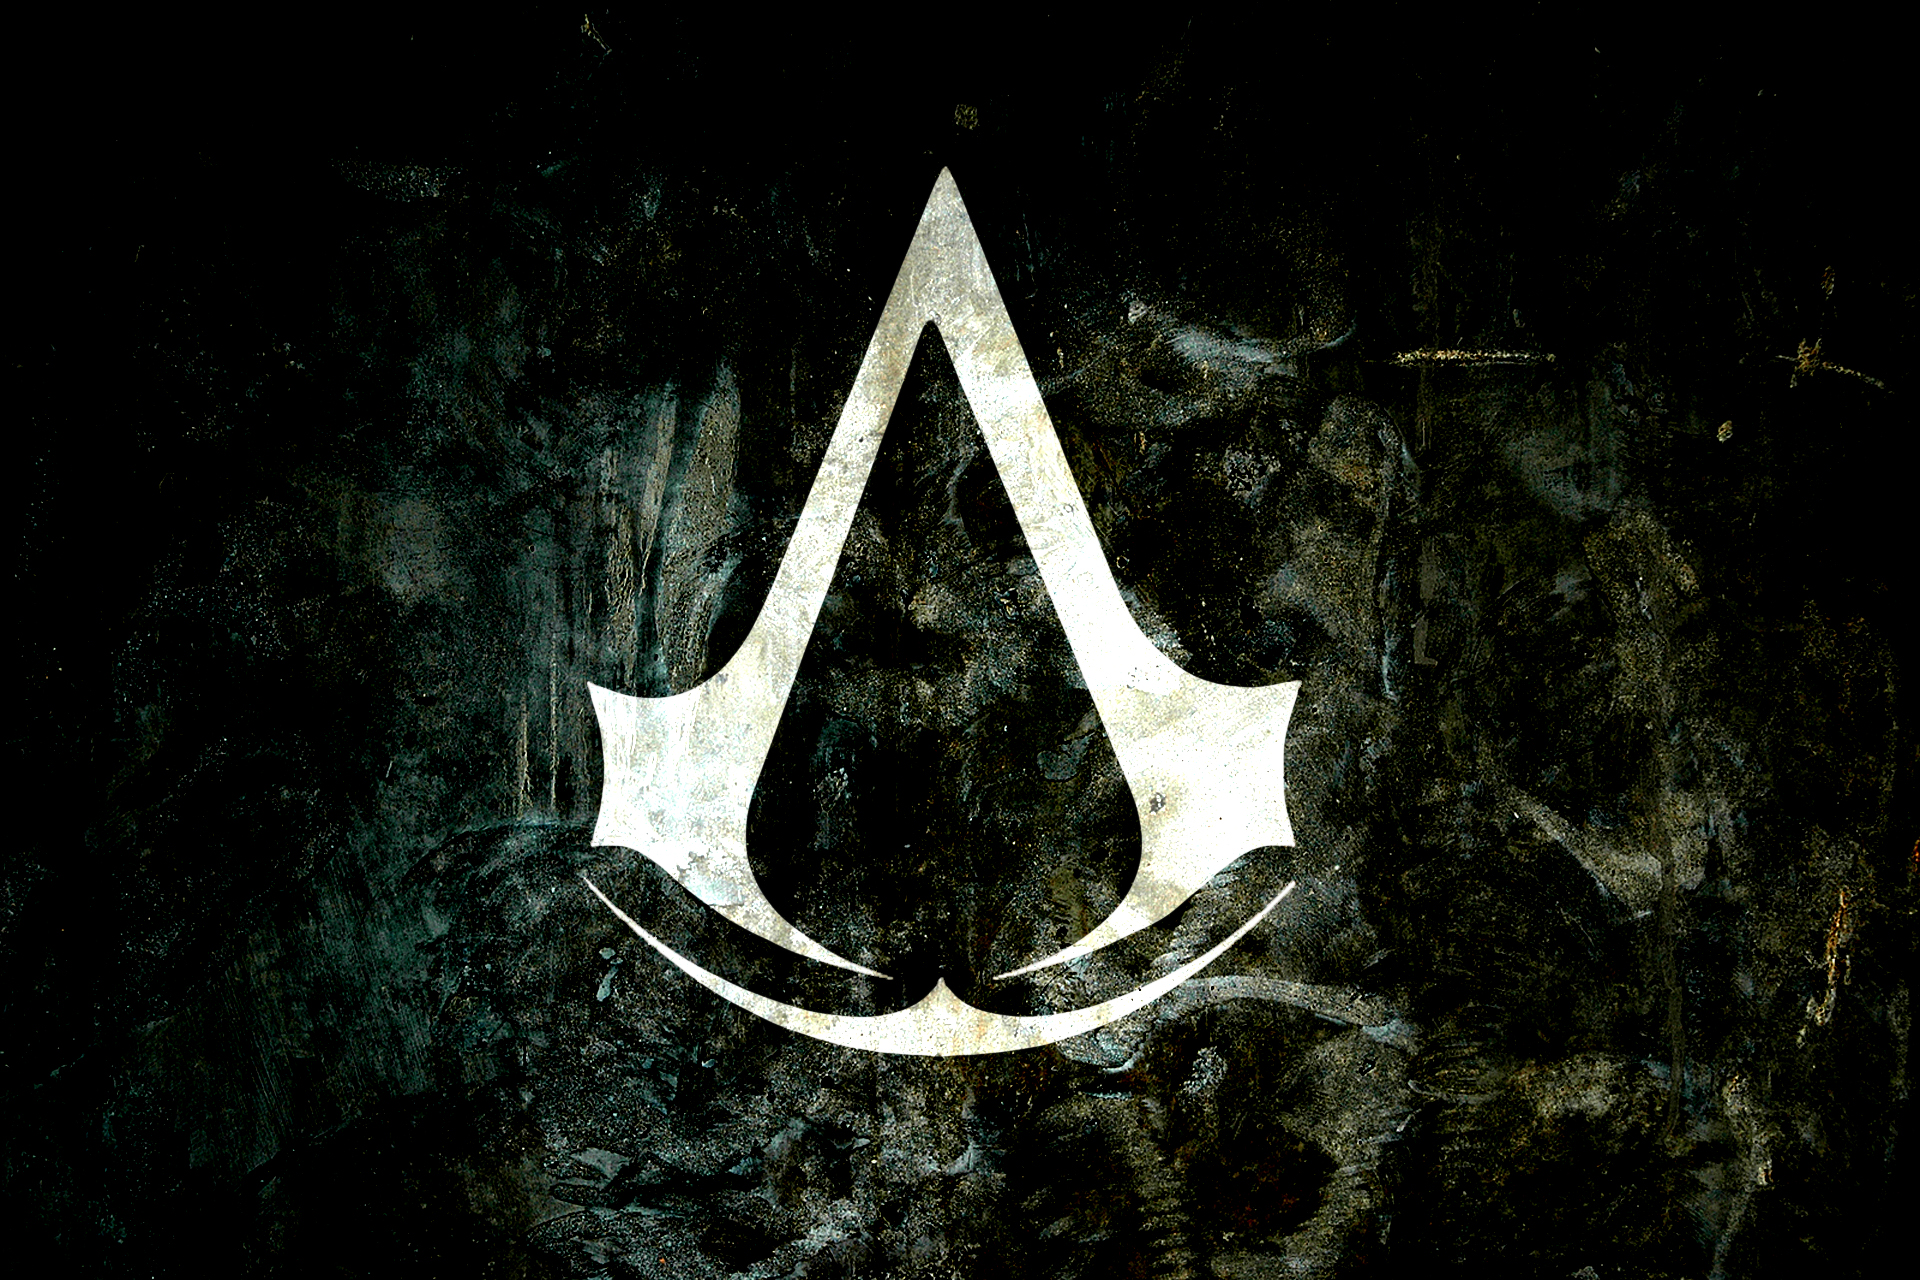 Creed symbol by draco100190 on deviantart assassins creed symbol by draco100190 assassins creed symbol by draco100190 biocorpaavc Images